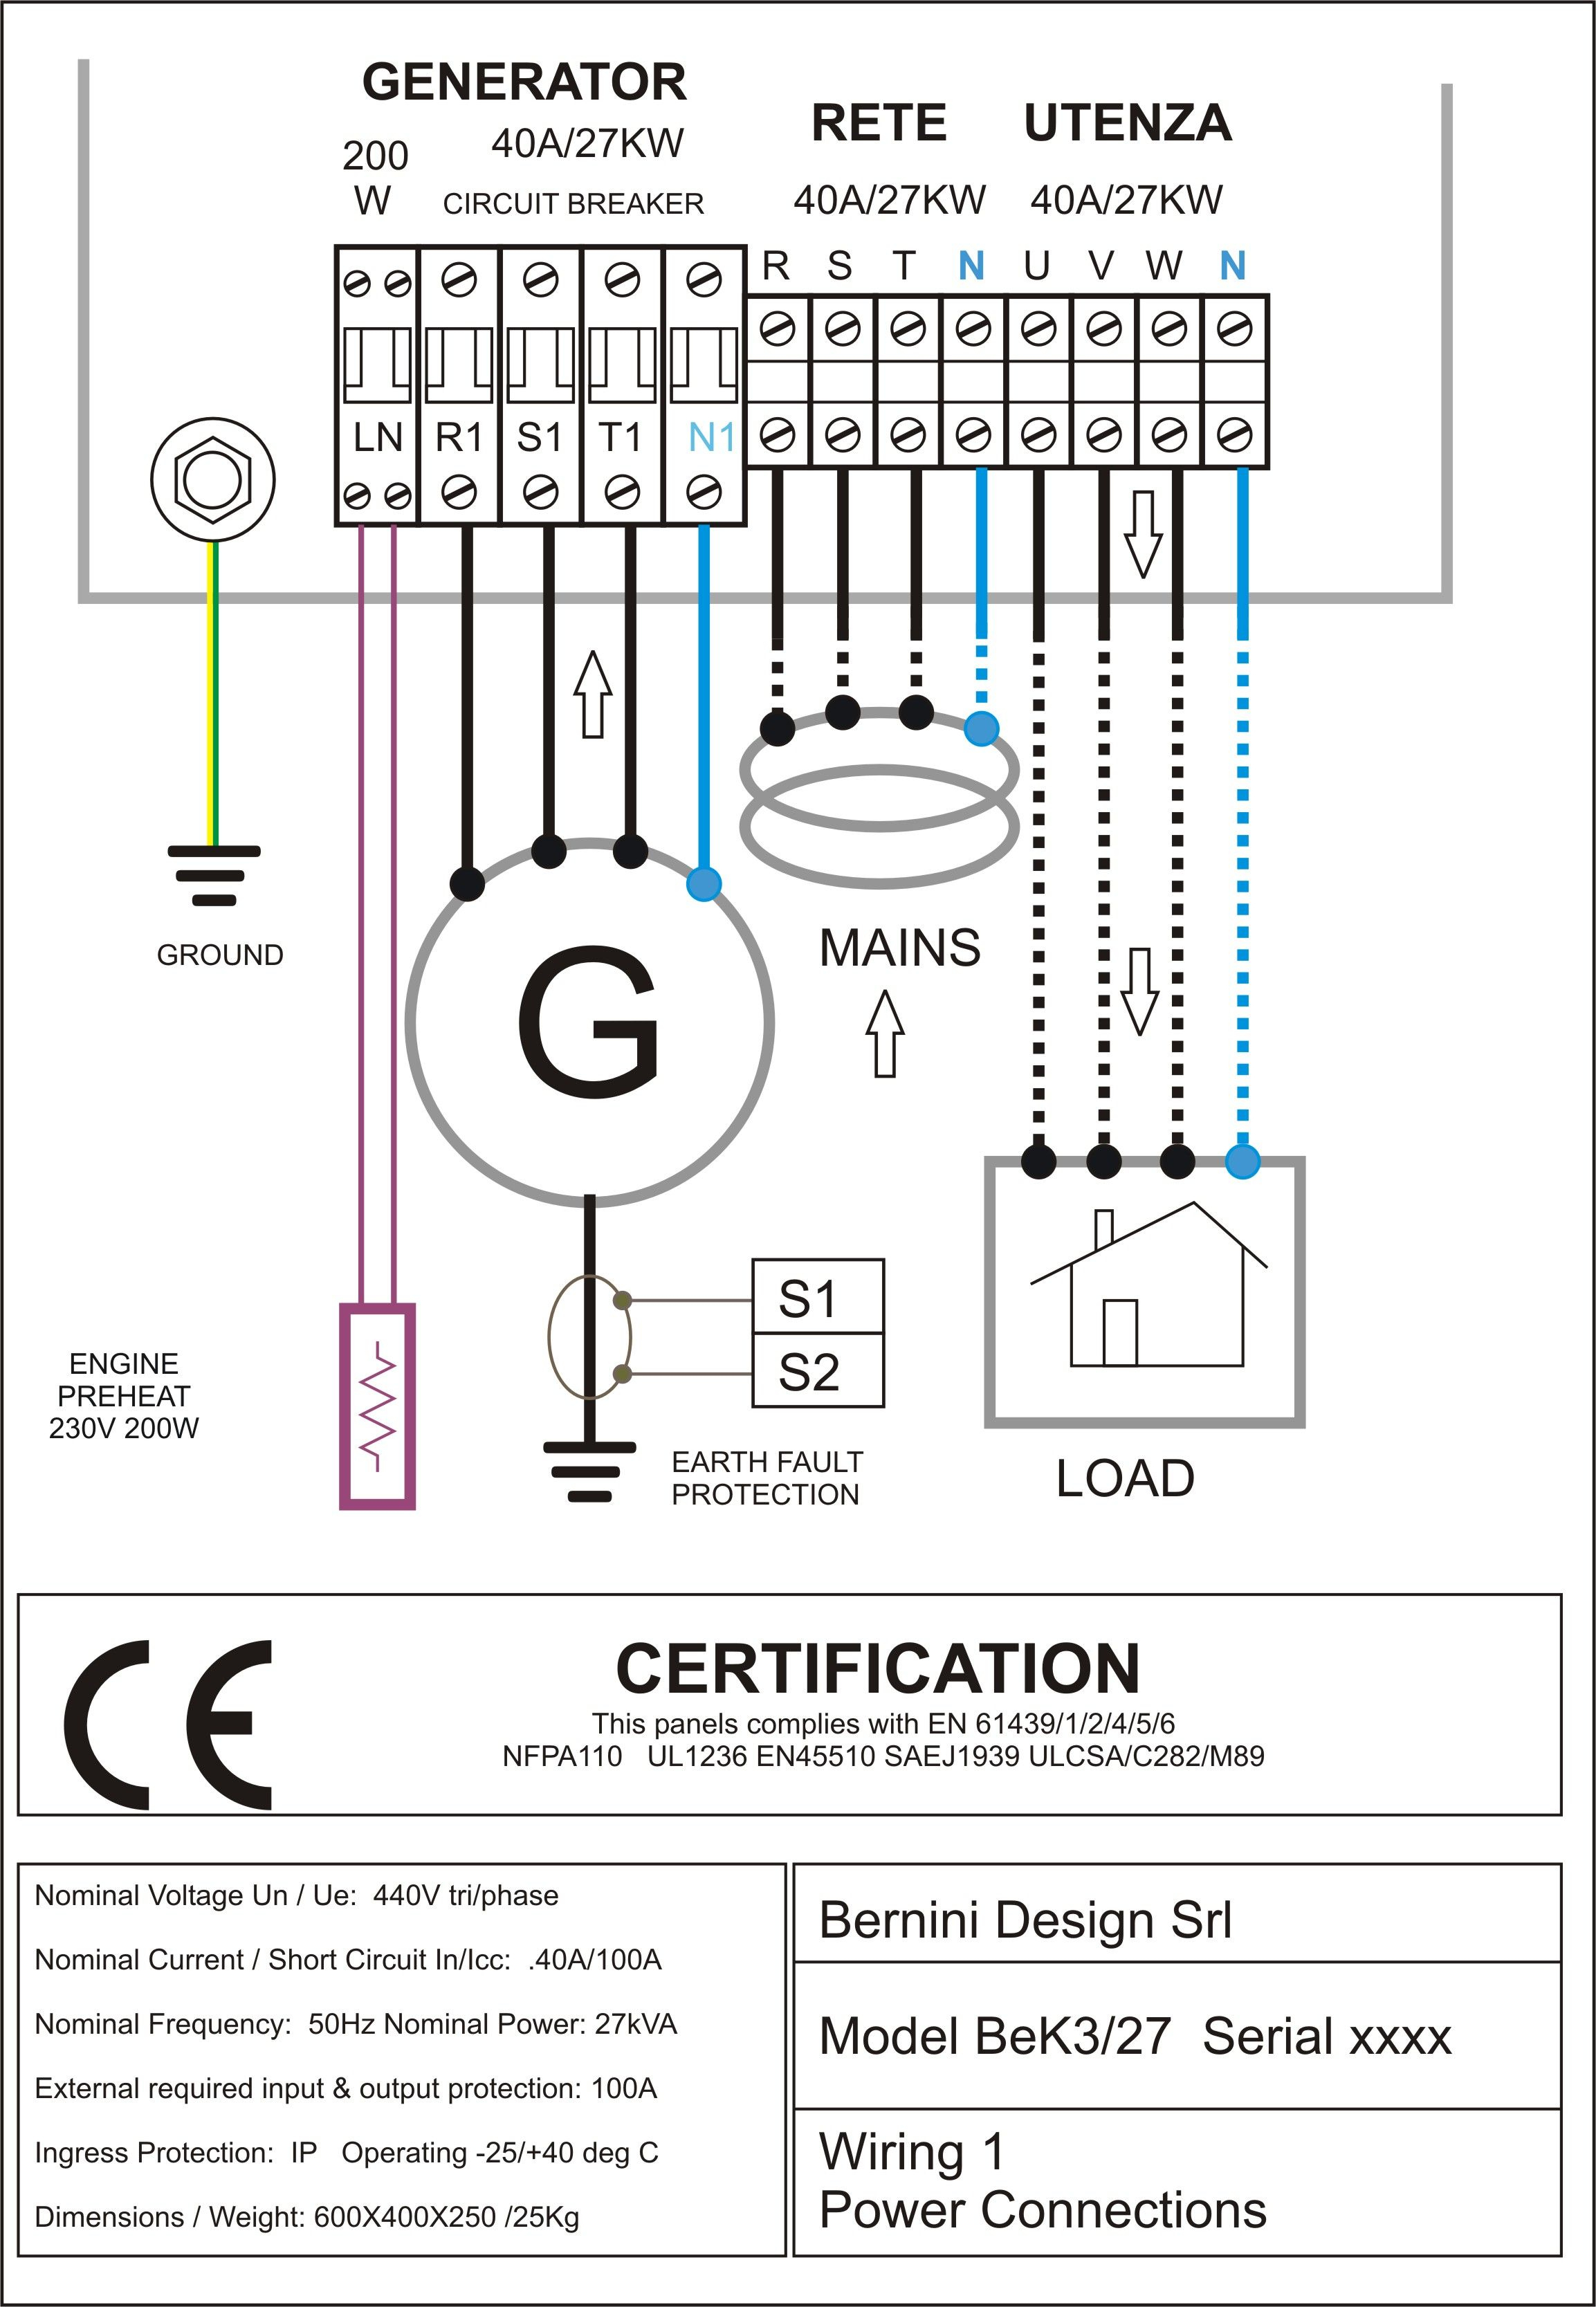 Wire Diagram For Generator | Wiring Library - Generator Wiring Diagram